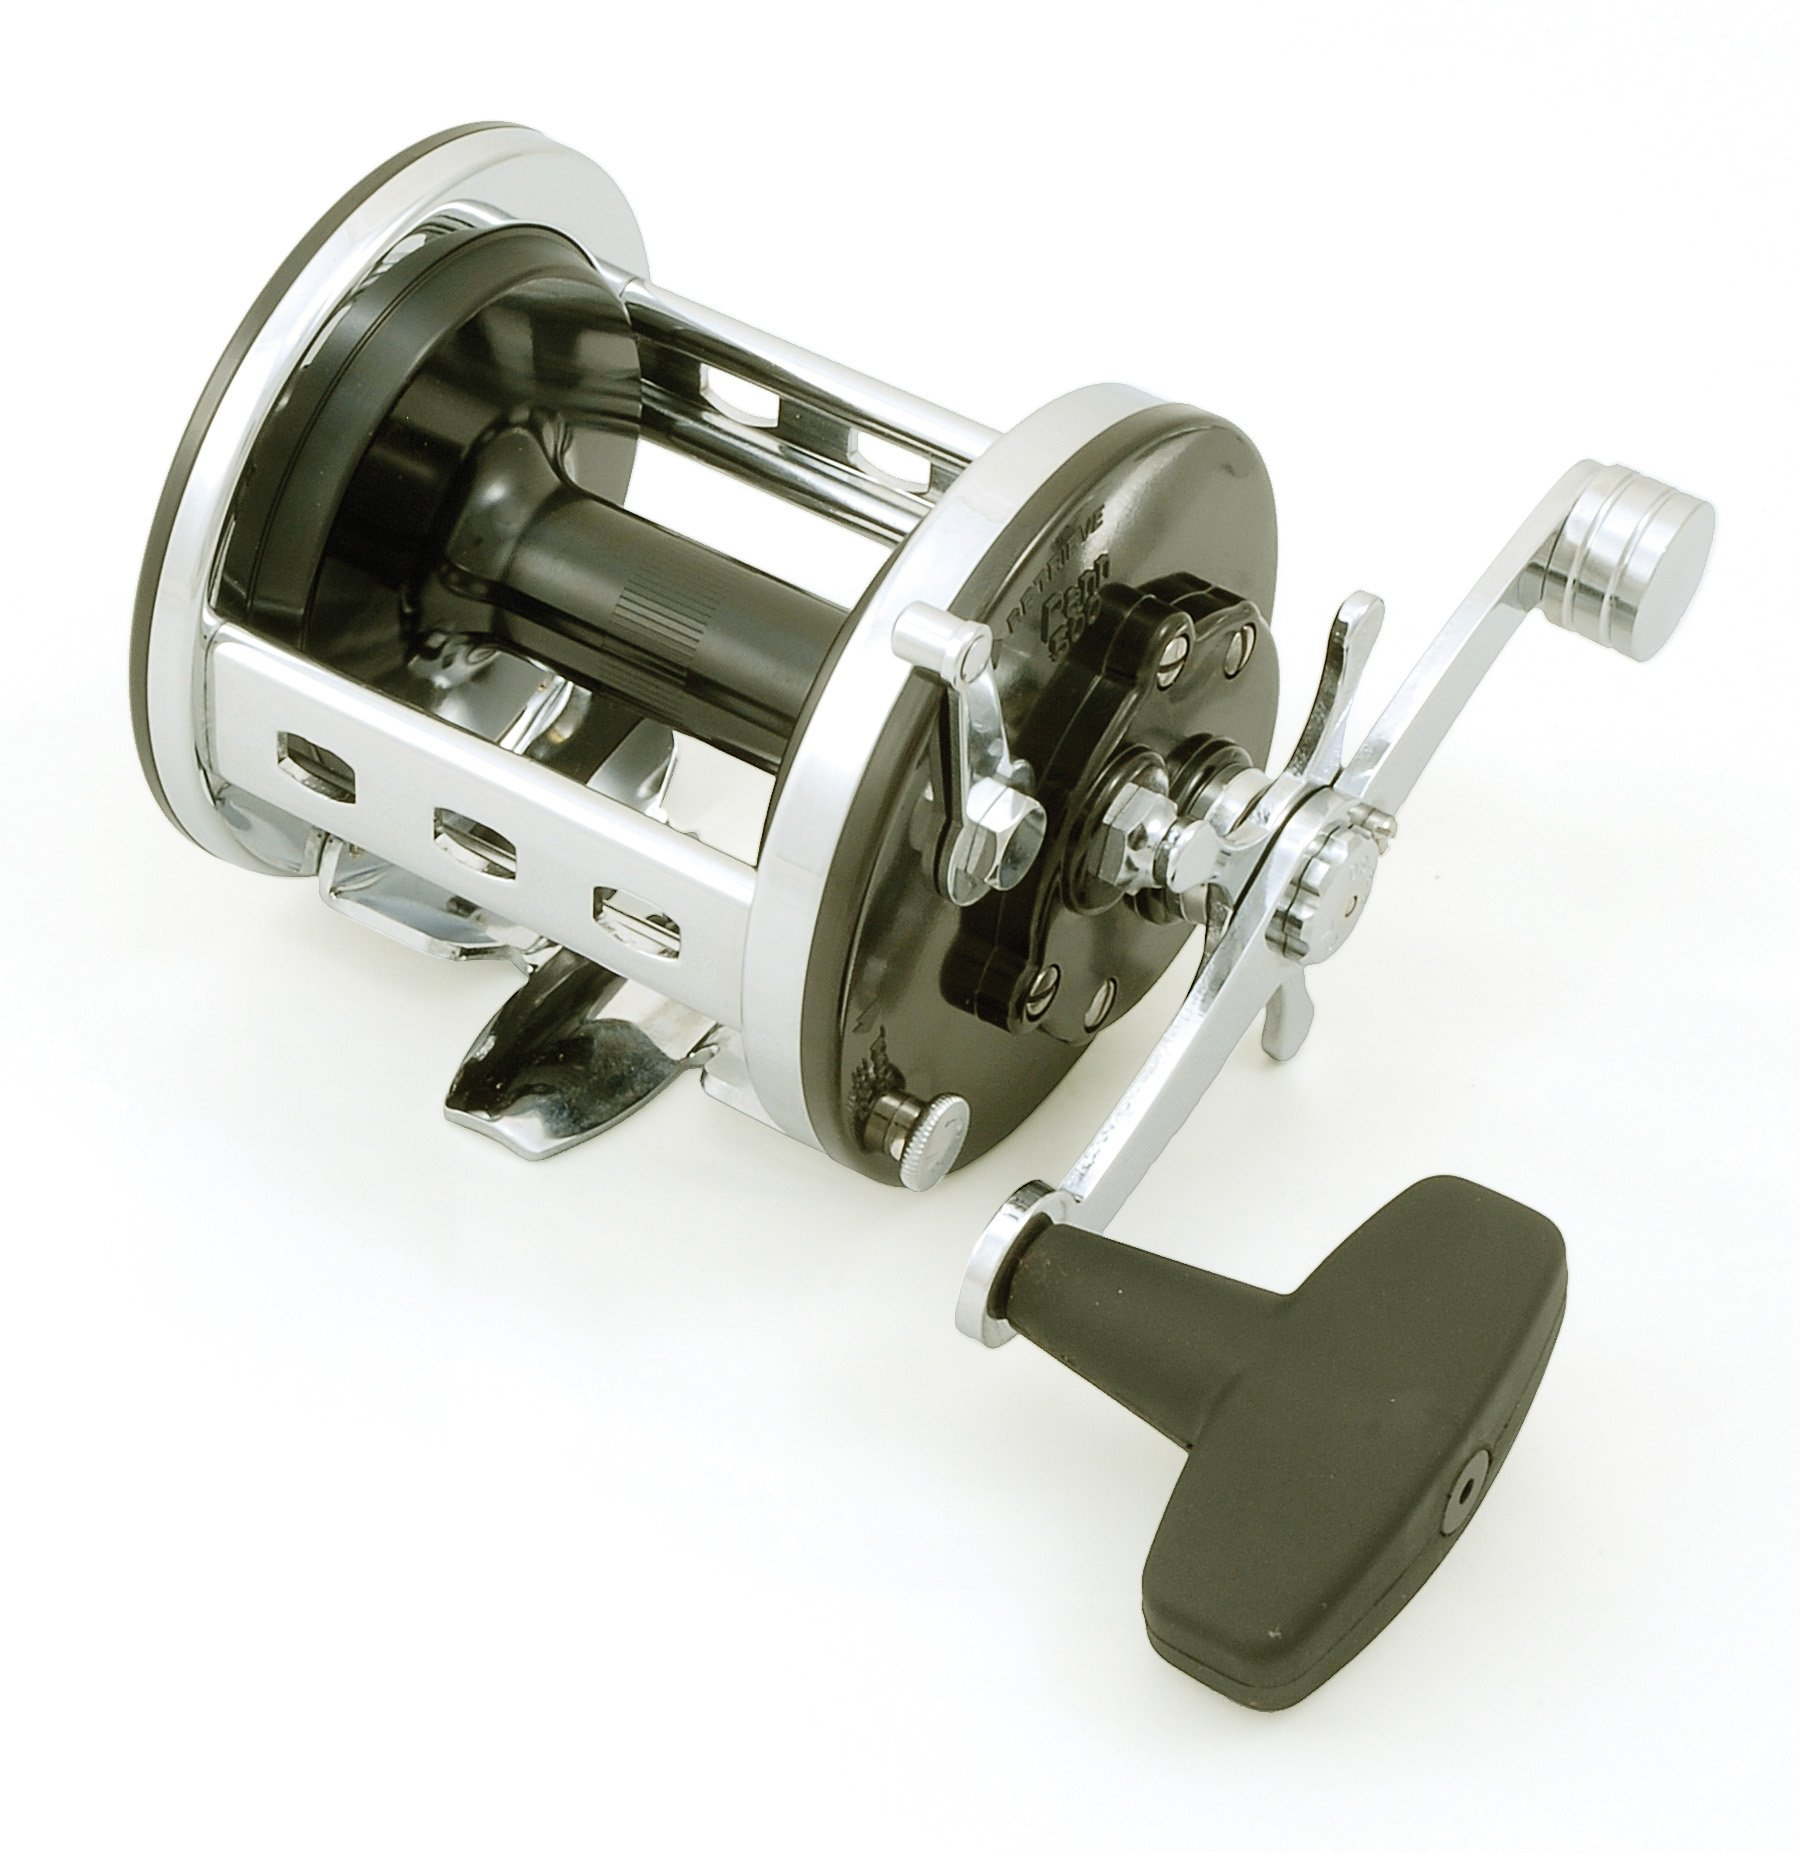 Penn Jigmaster 500L Conventional Fishing Reel by Penn